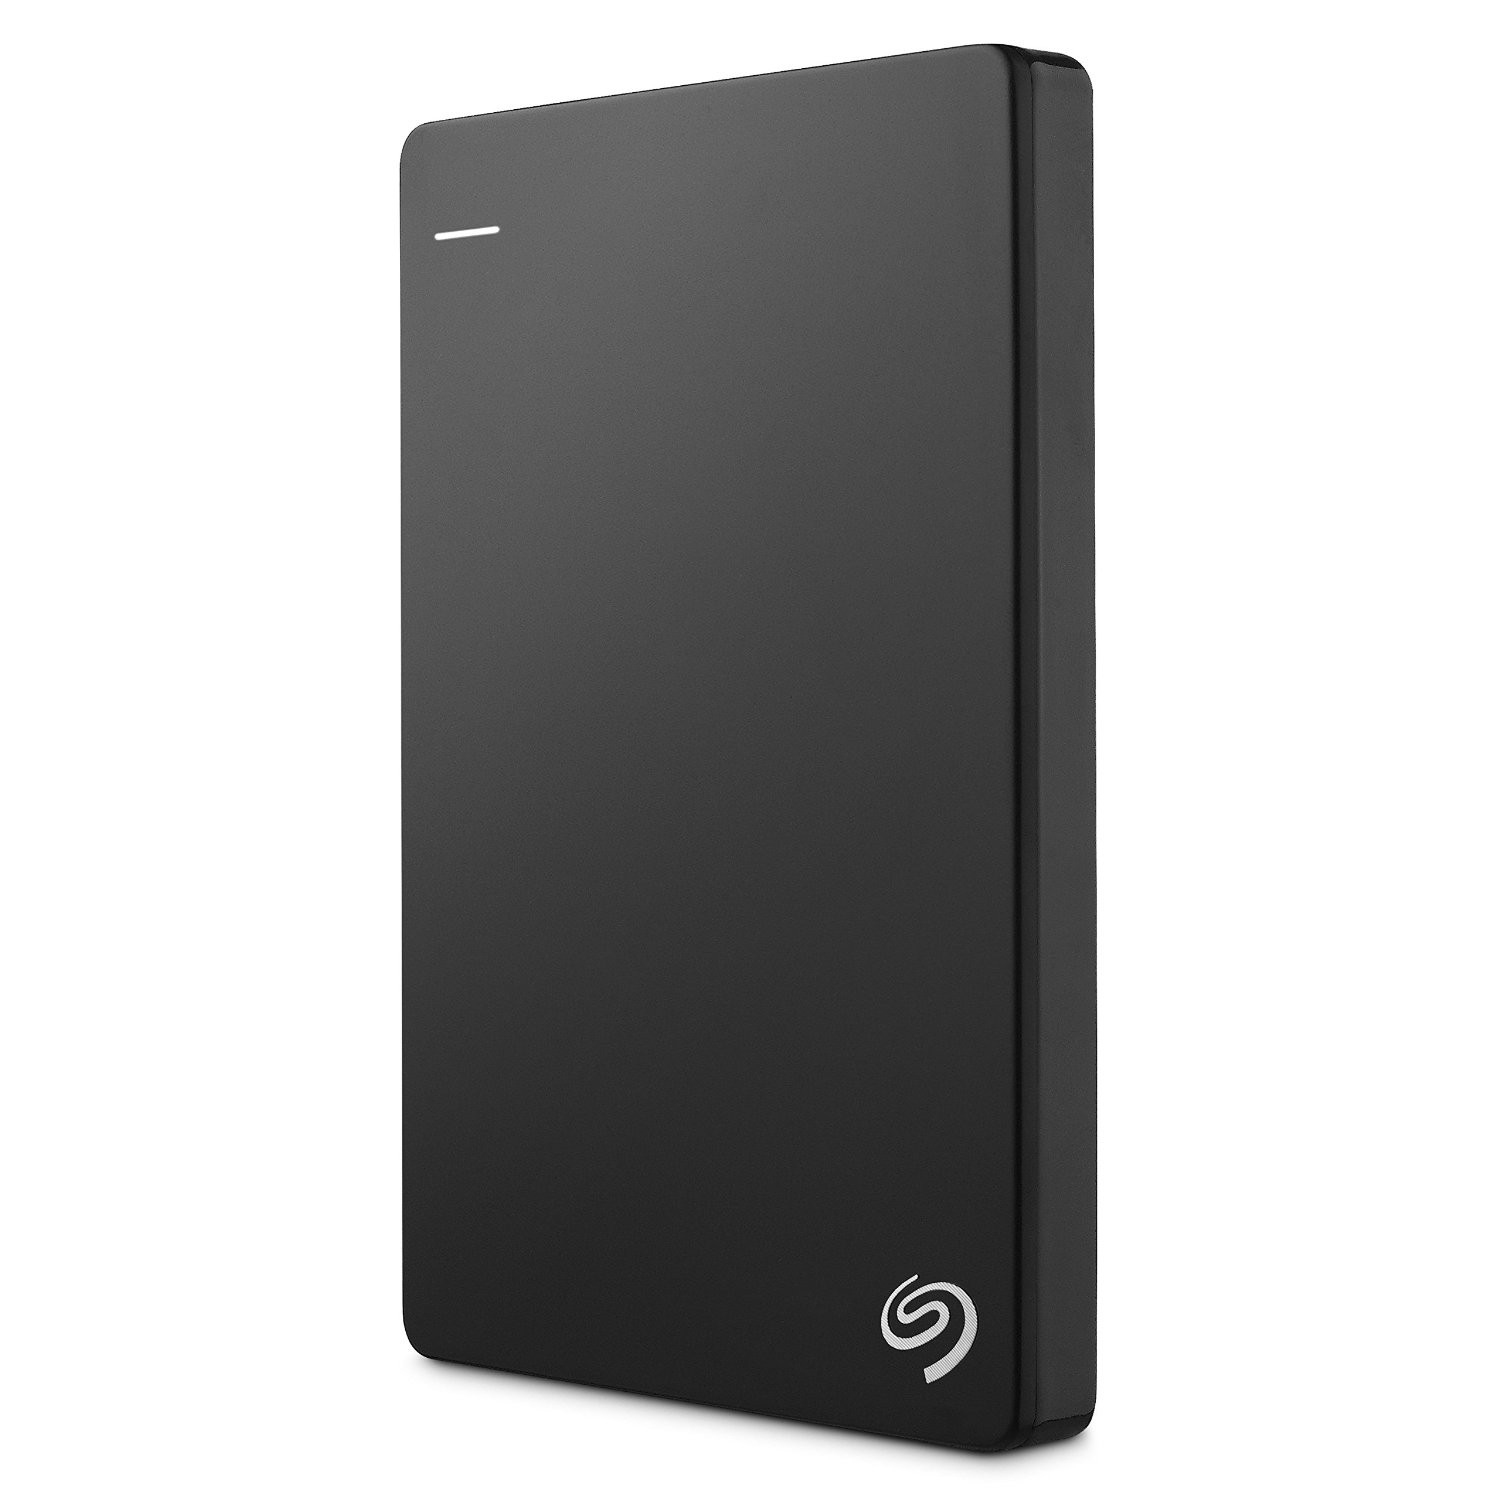 Seagate Backup Plus STDR1000300 1000GB Black external hard drive